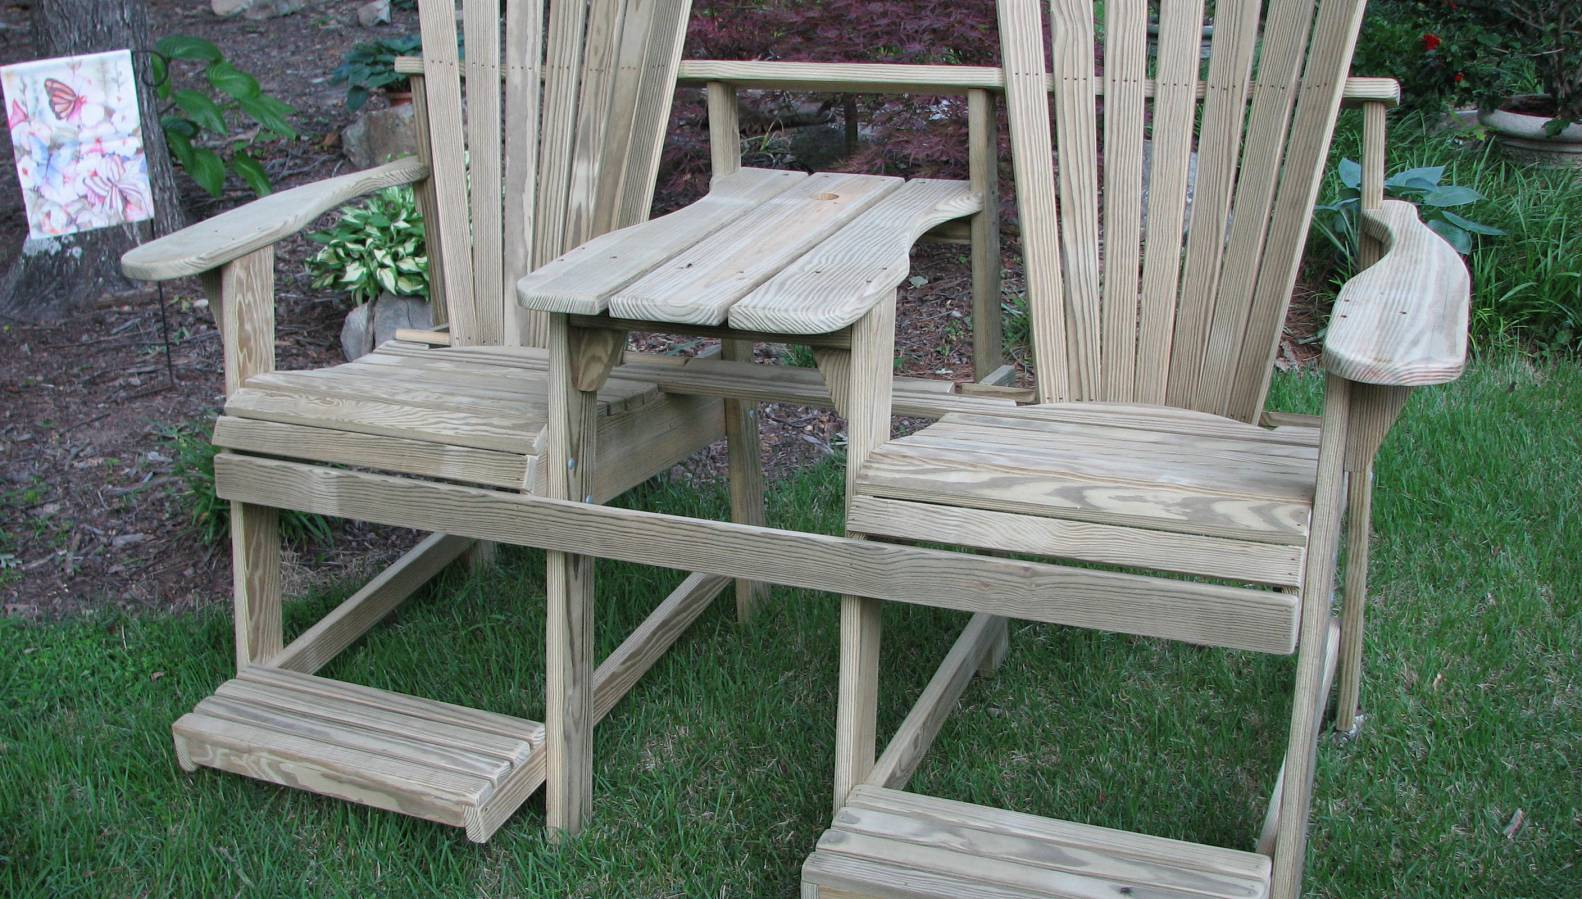 1582x899 Chair 7 Tall Deck Chairs Balcony Adirondack Plans Brown